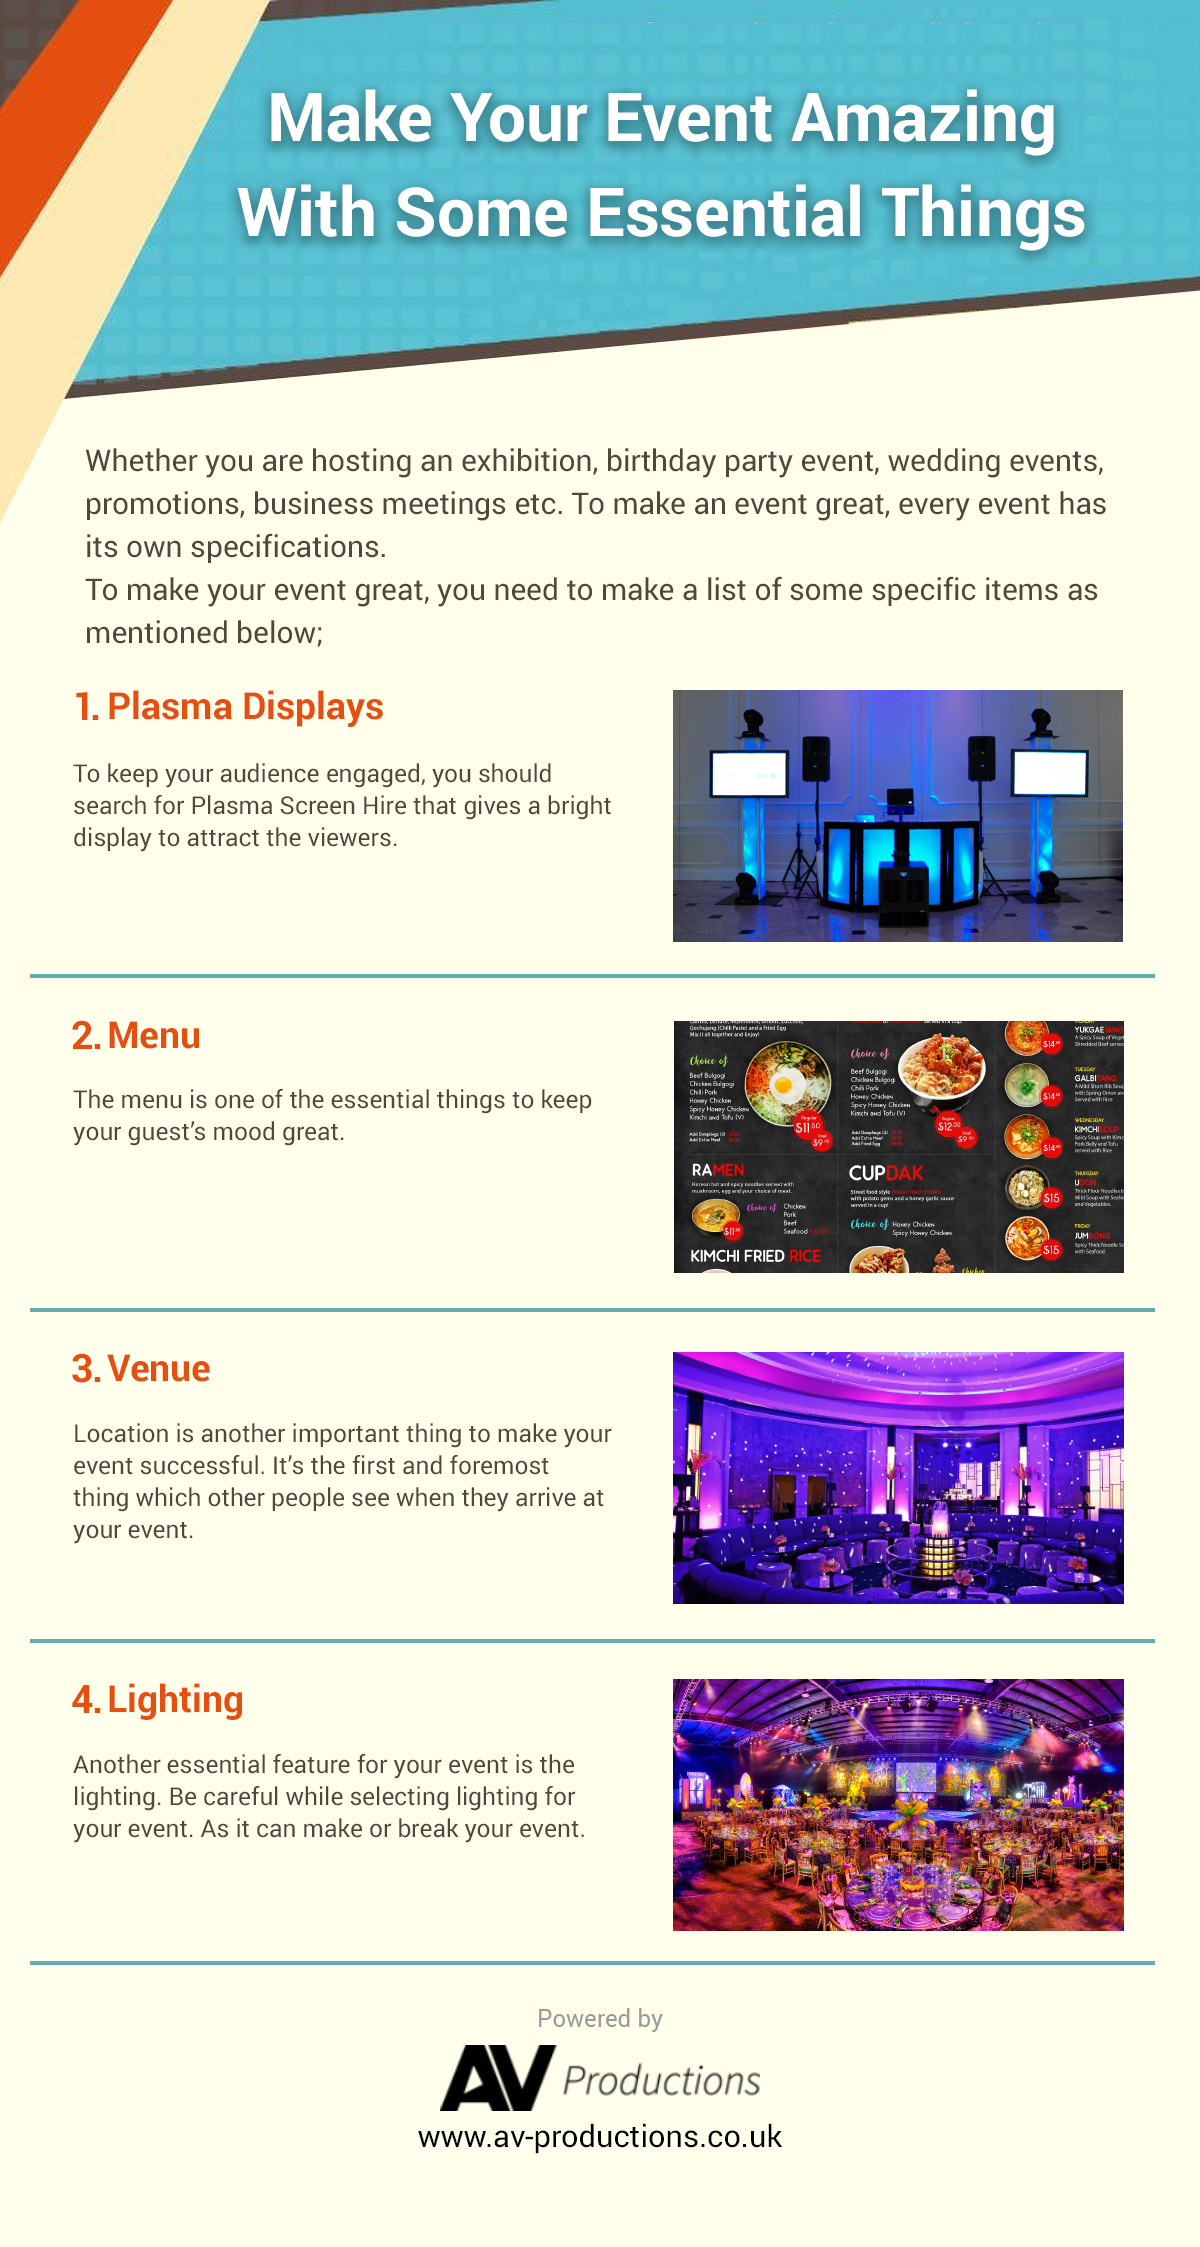 Make Your Event Amazing With Some Essential Things 1